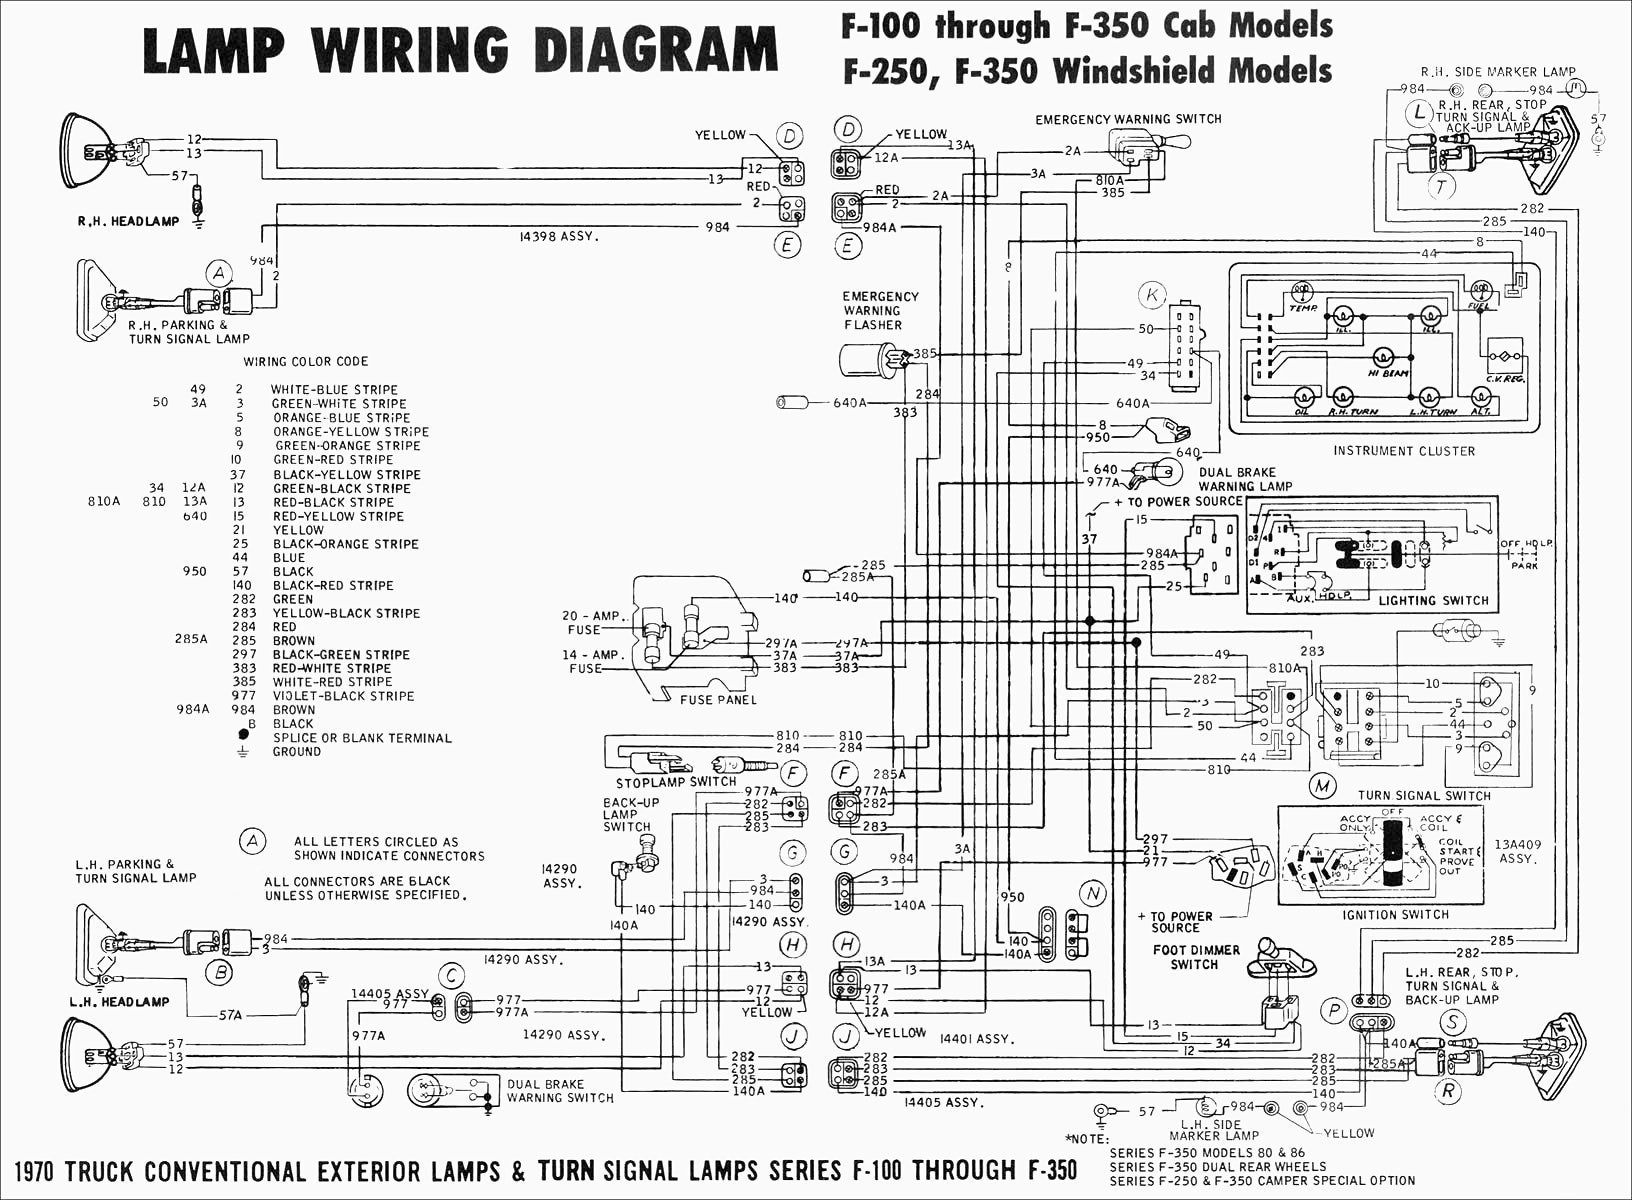 1997 jeep grand cherokee spark plug diagram custom wiring diagram u2022 rh littlewaves co